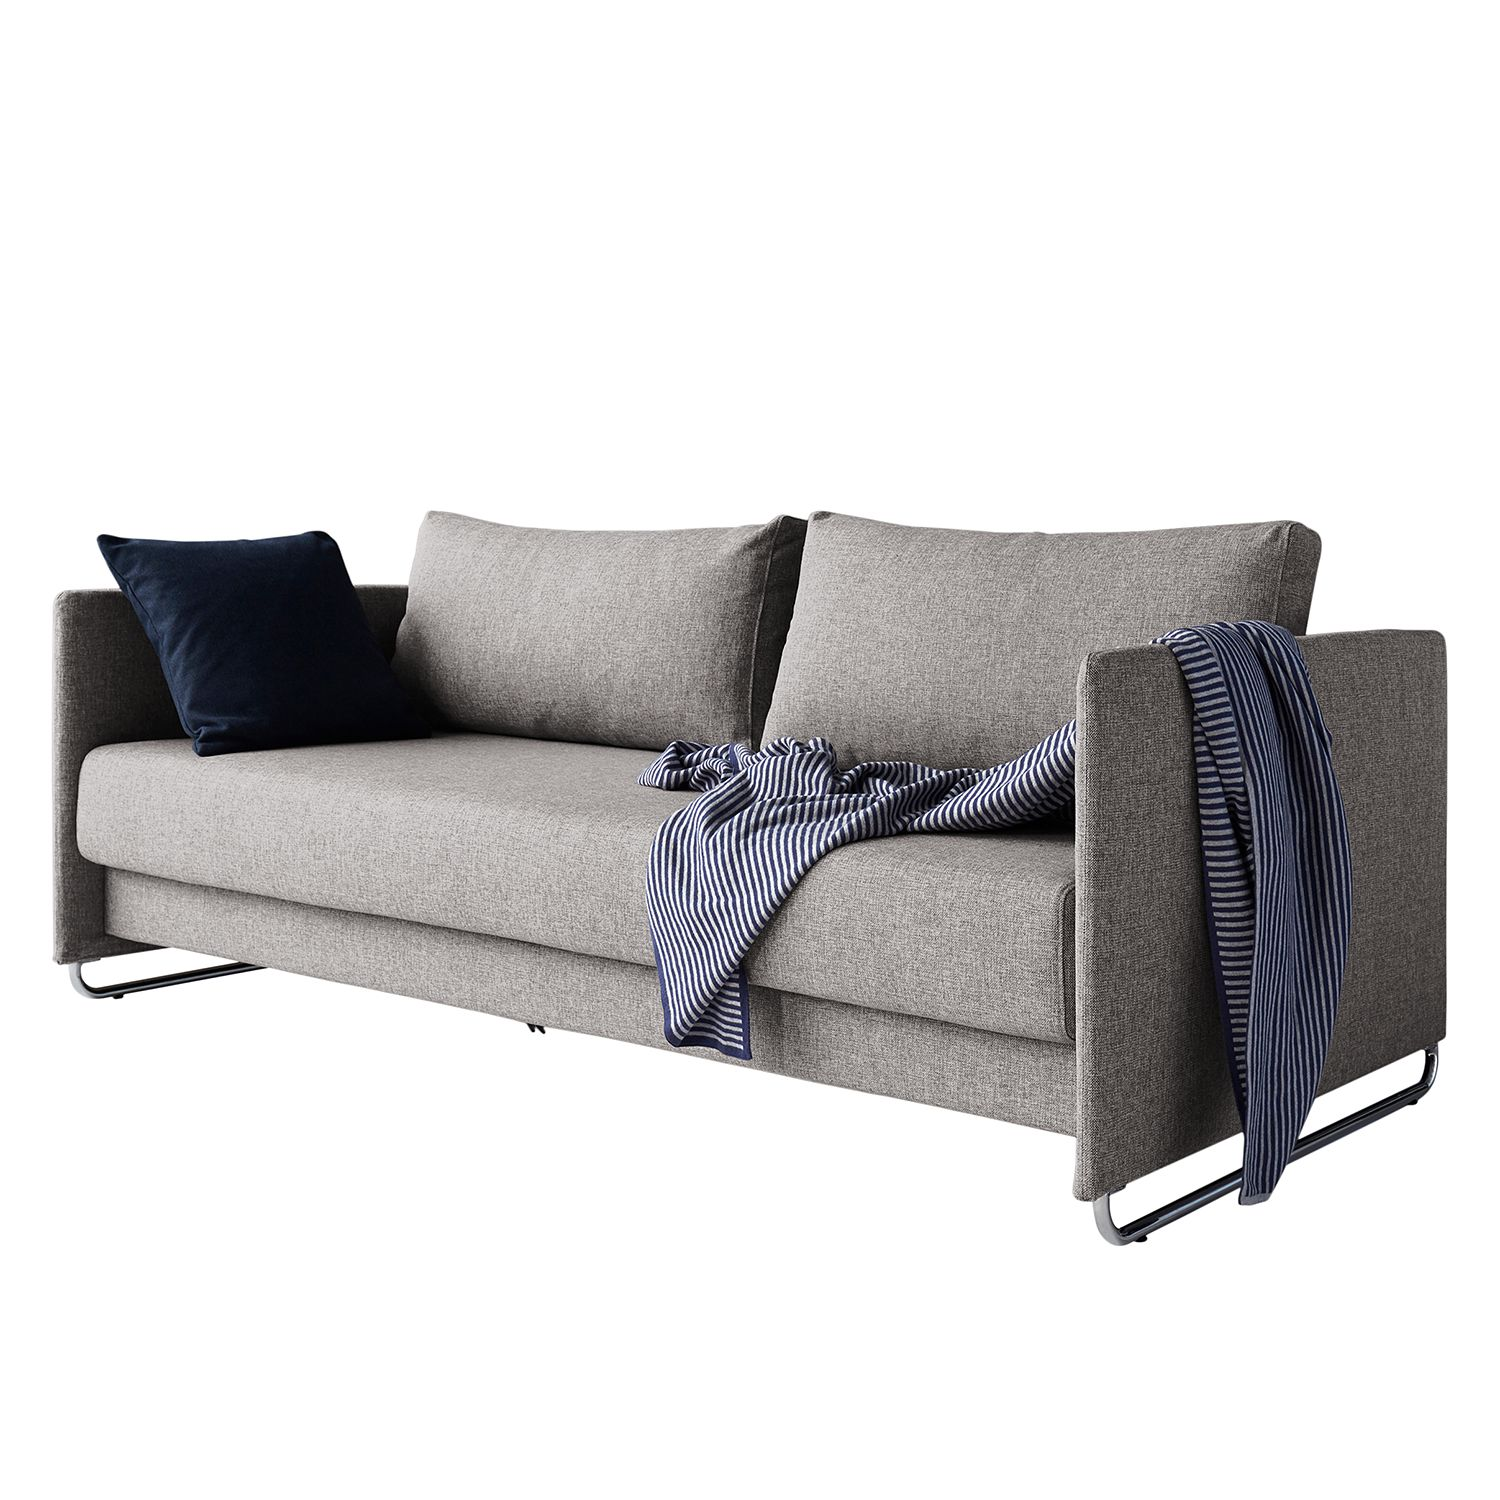 Canapé convertible Upend II - Tissu - Gris, Innovation Möbel